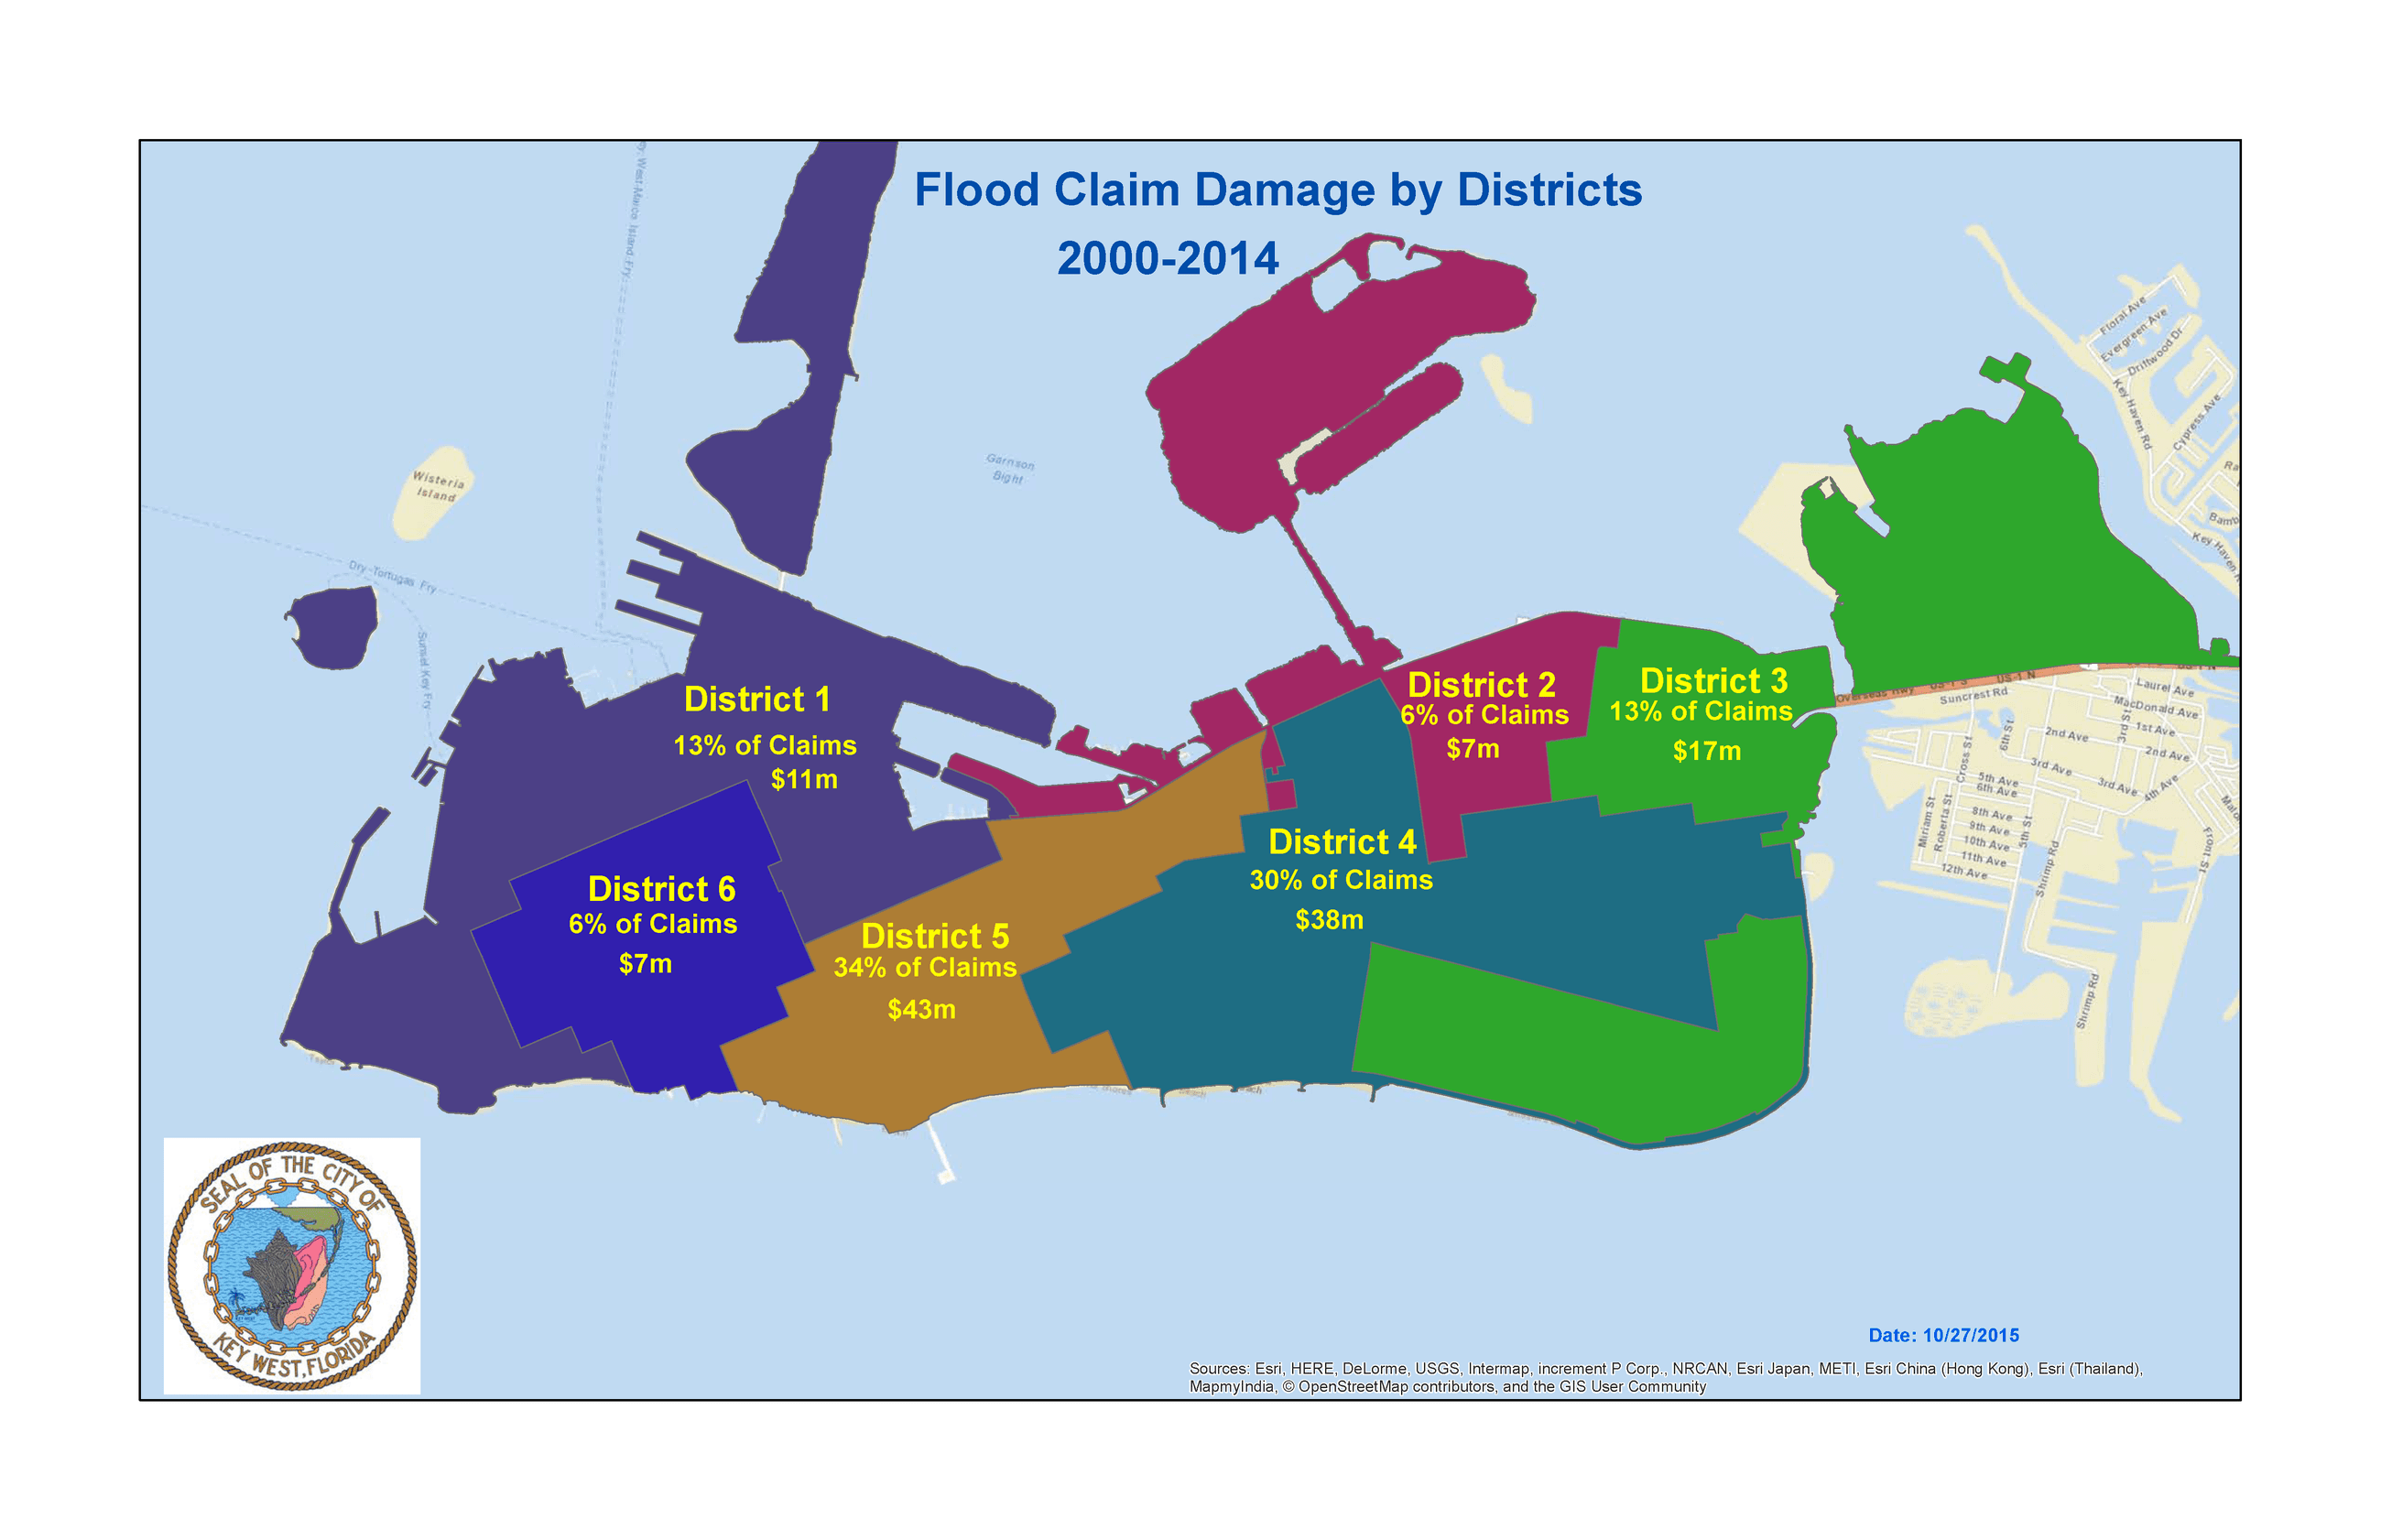 Flood Claim Damage by Districts Map